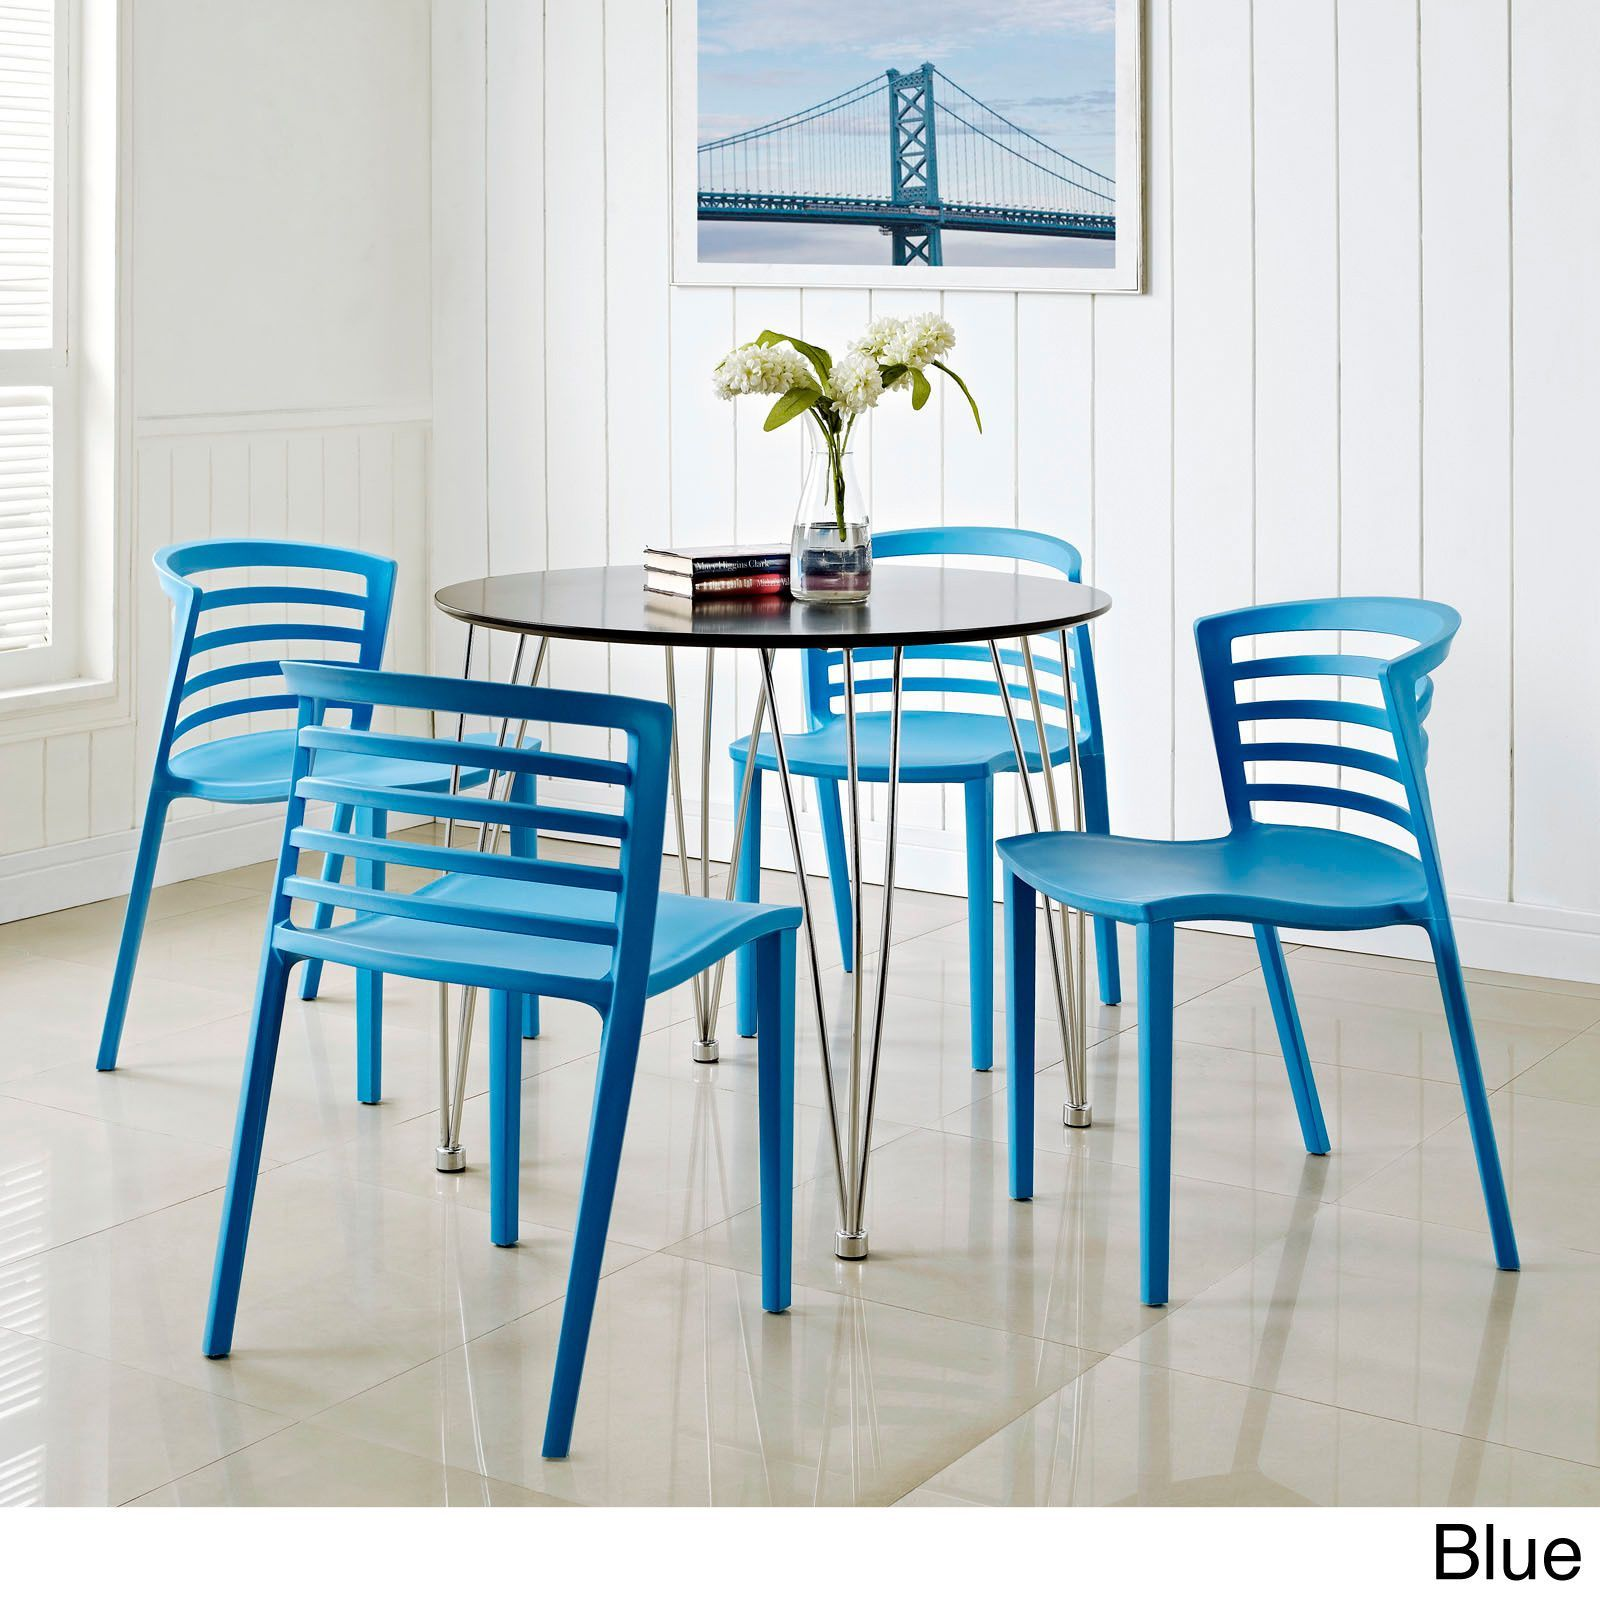 Contemporary Curvy Dining Chairs (Set of 4) - Overstock Shopping ...